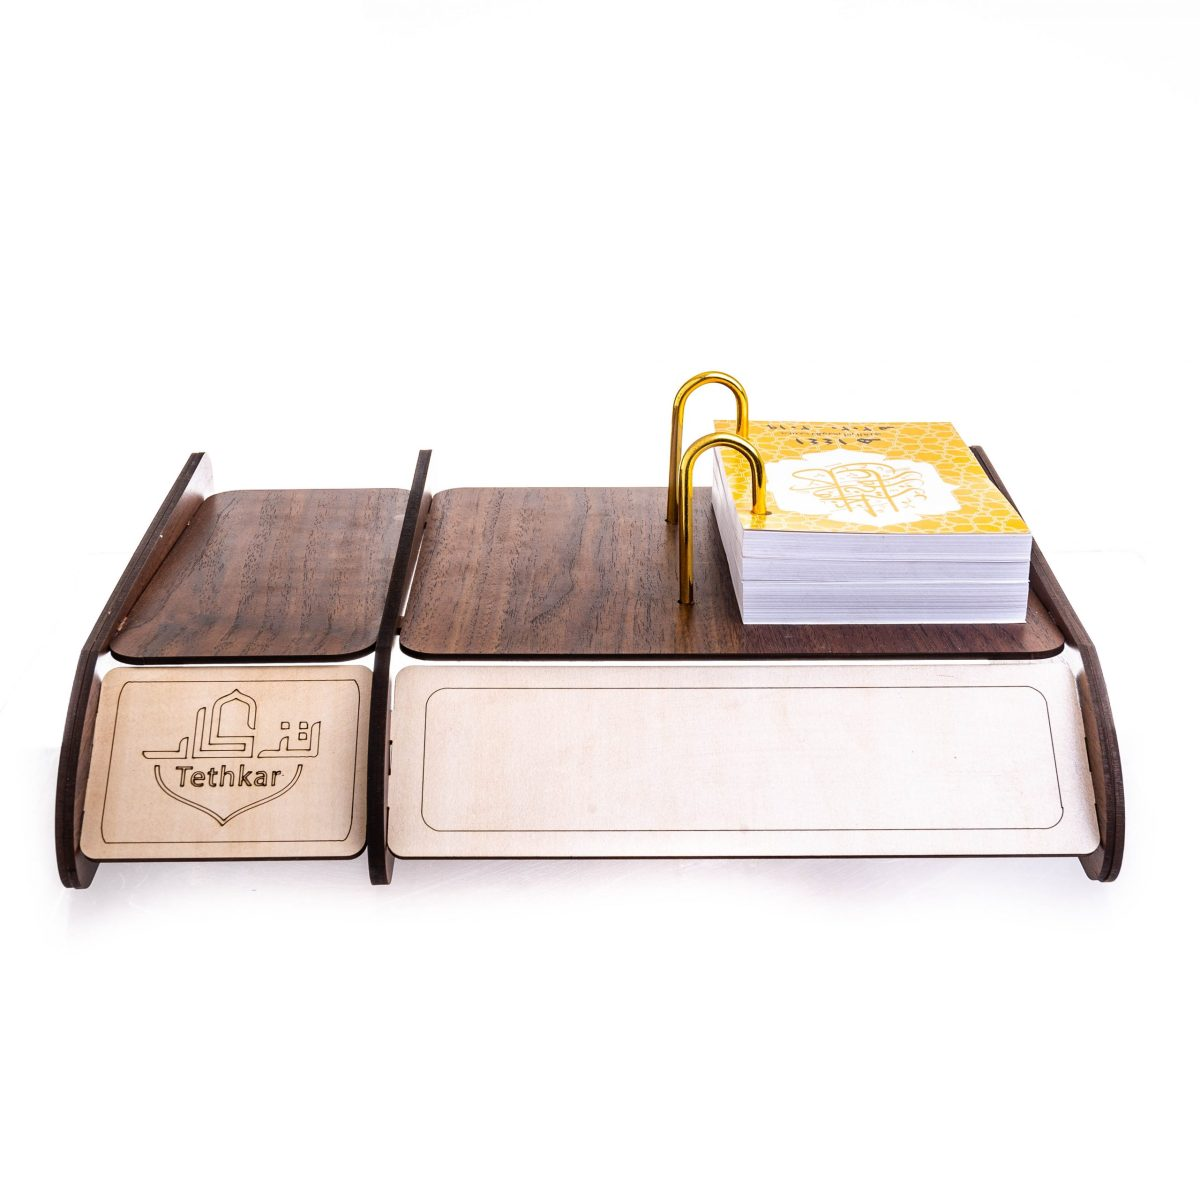 General Purpose Wooden Desk Stand With Calendar